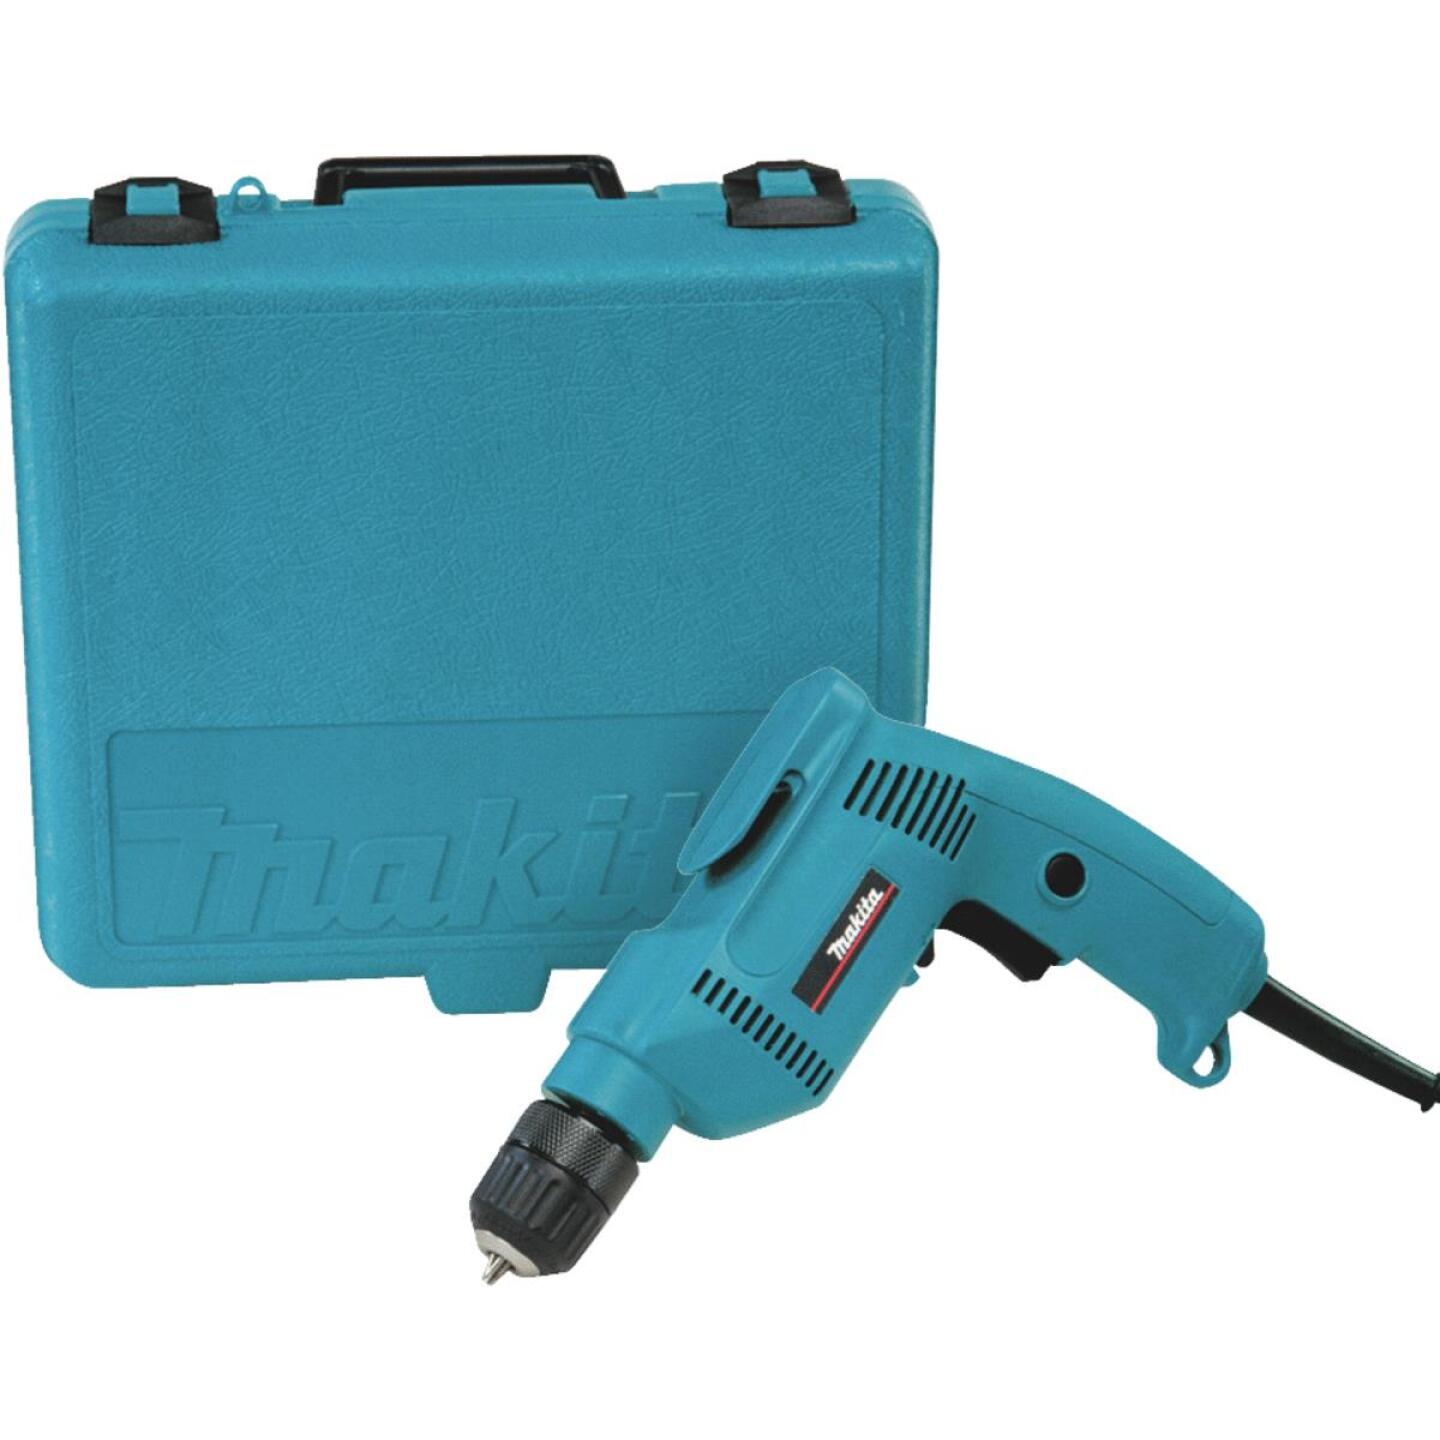 Makita 3/8 In. 4.9-Amp Keyless Electric Drill with Case Image 2